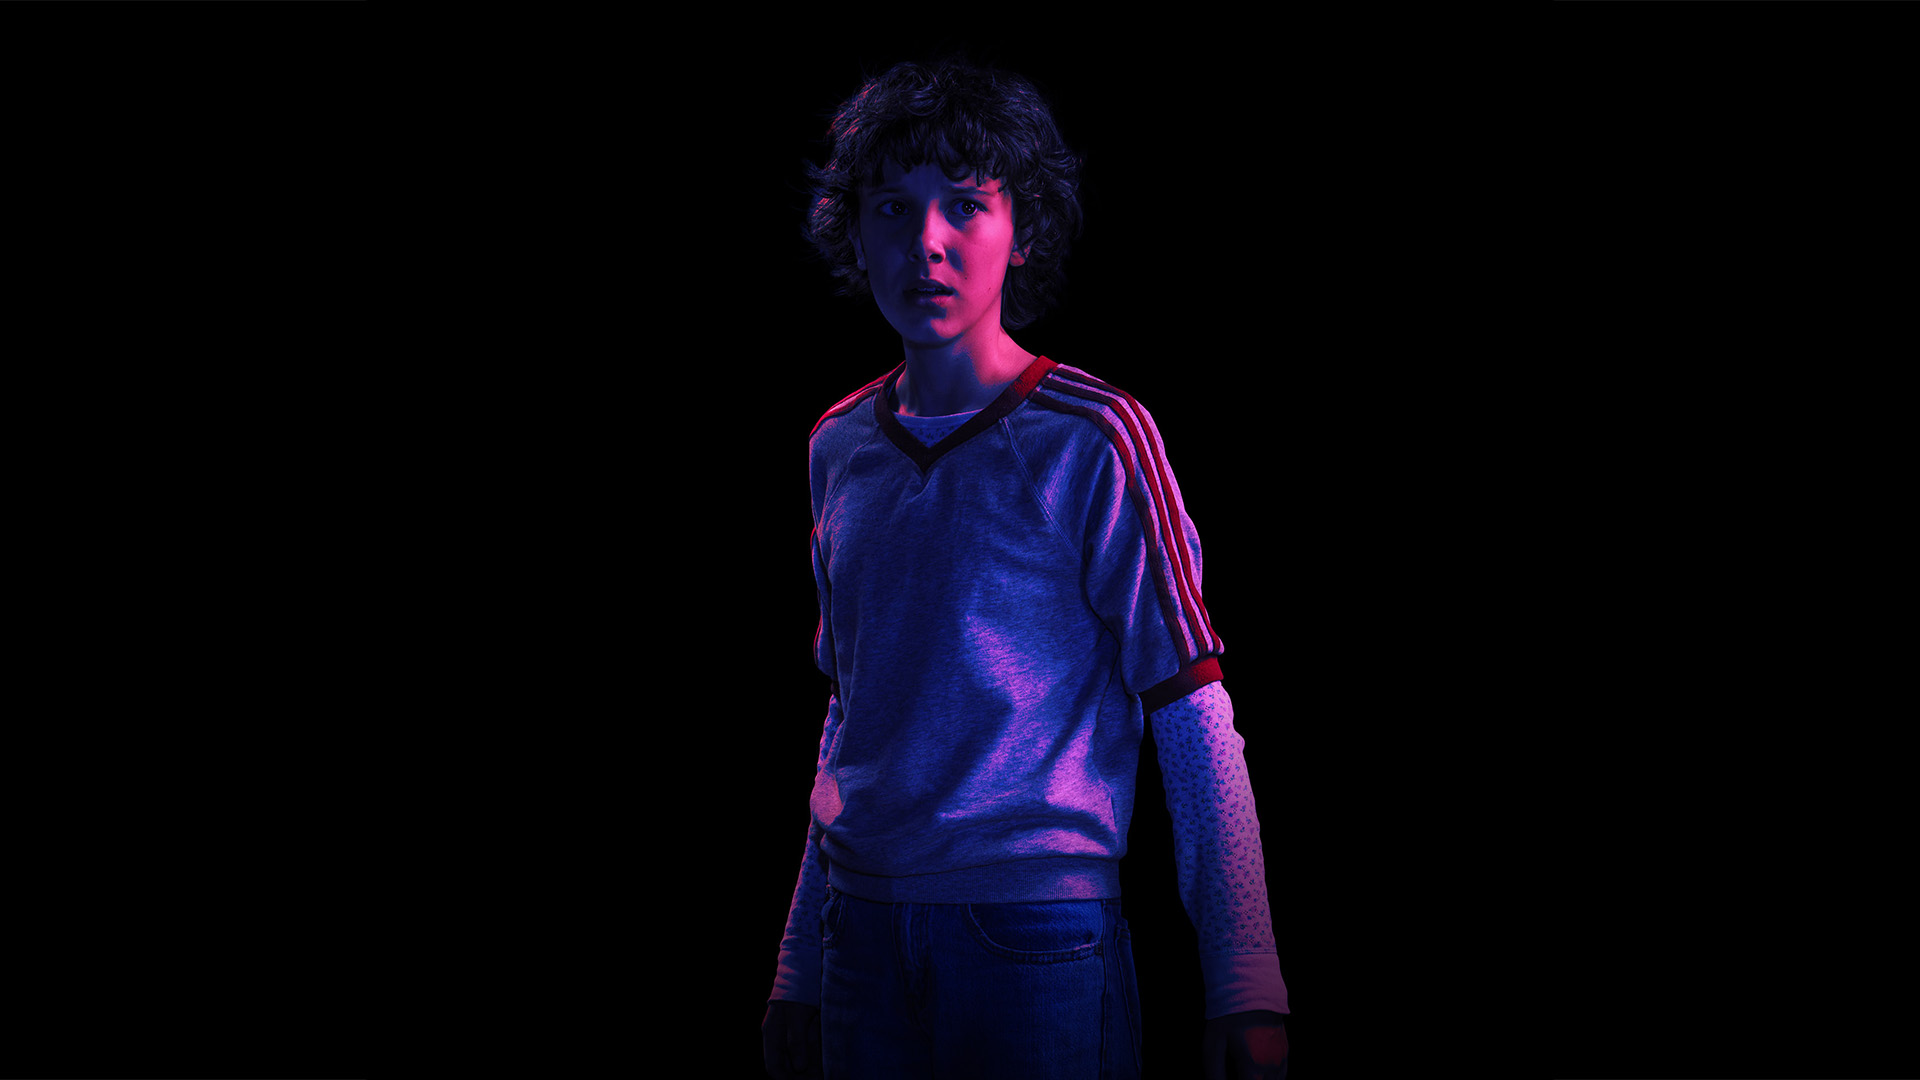 1440x900 Eleven Stranger Things Season 2 1440x900 Resolution HD 4k Wallpapers, Images ...